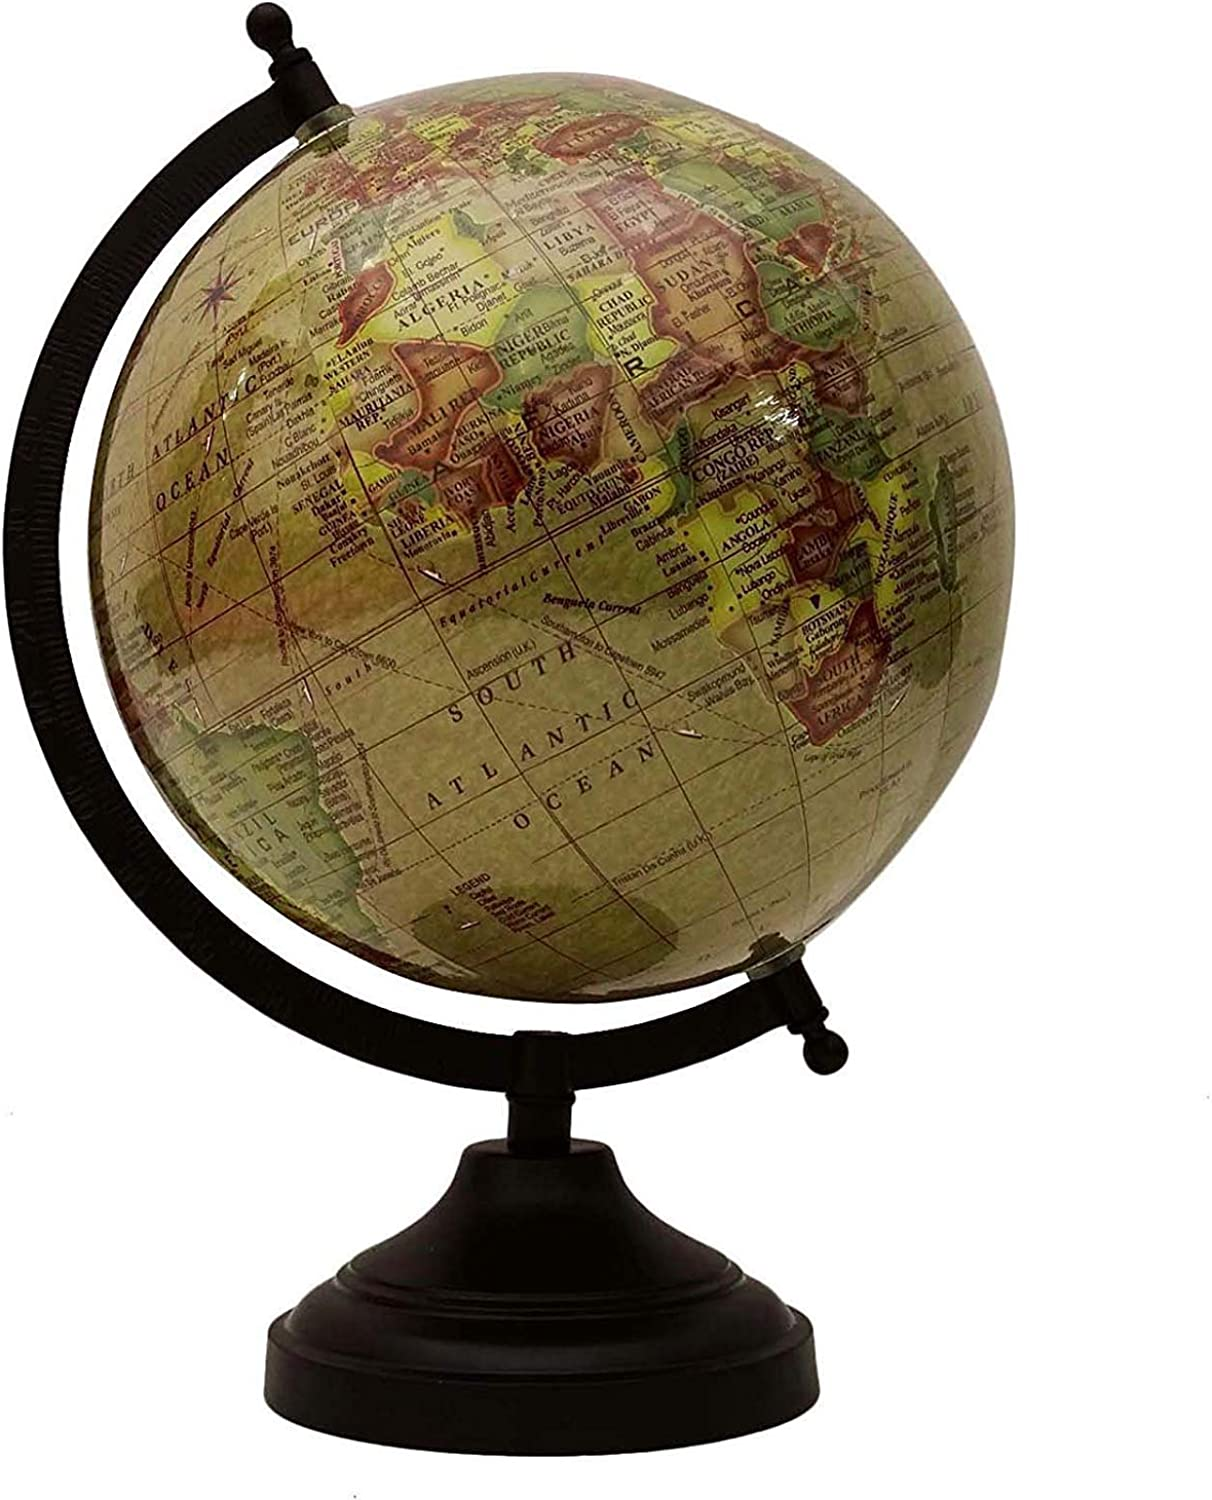 12  Desktop redating Beige Ocean Globe World Earth Geography Gift Table Decor by Globes HubPerfect for Home, Office & Classroom